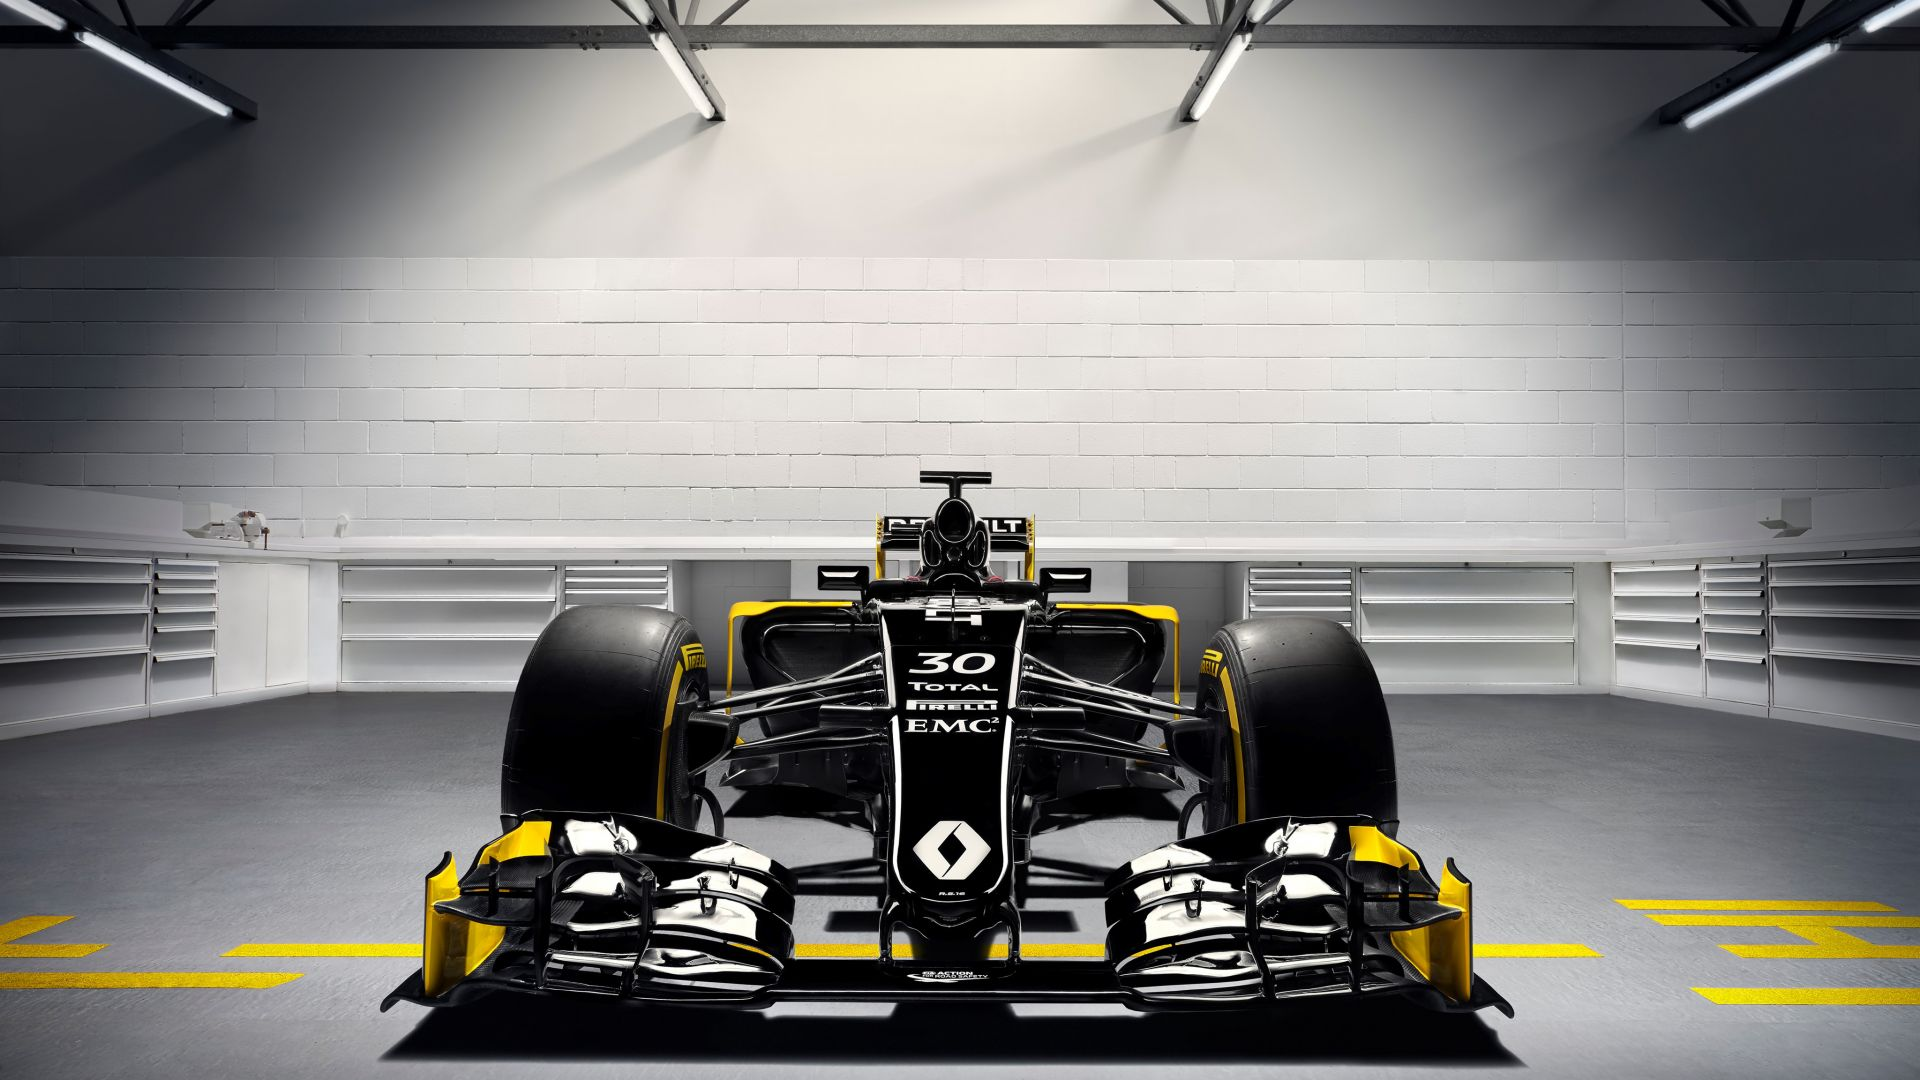 Renault R.S.16, Formula 1, testing, LIVE from Barcelona, F1 (horizontal)